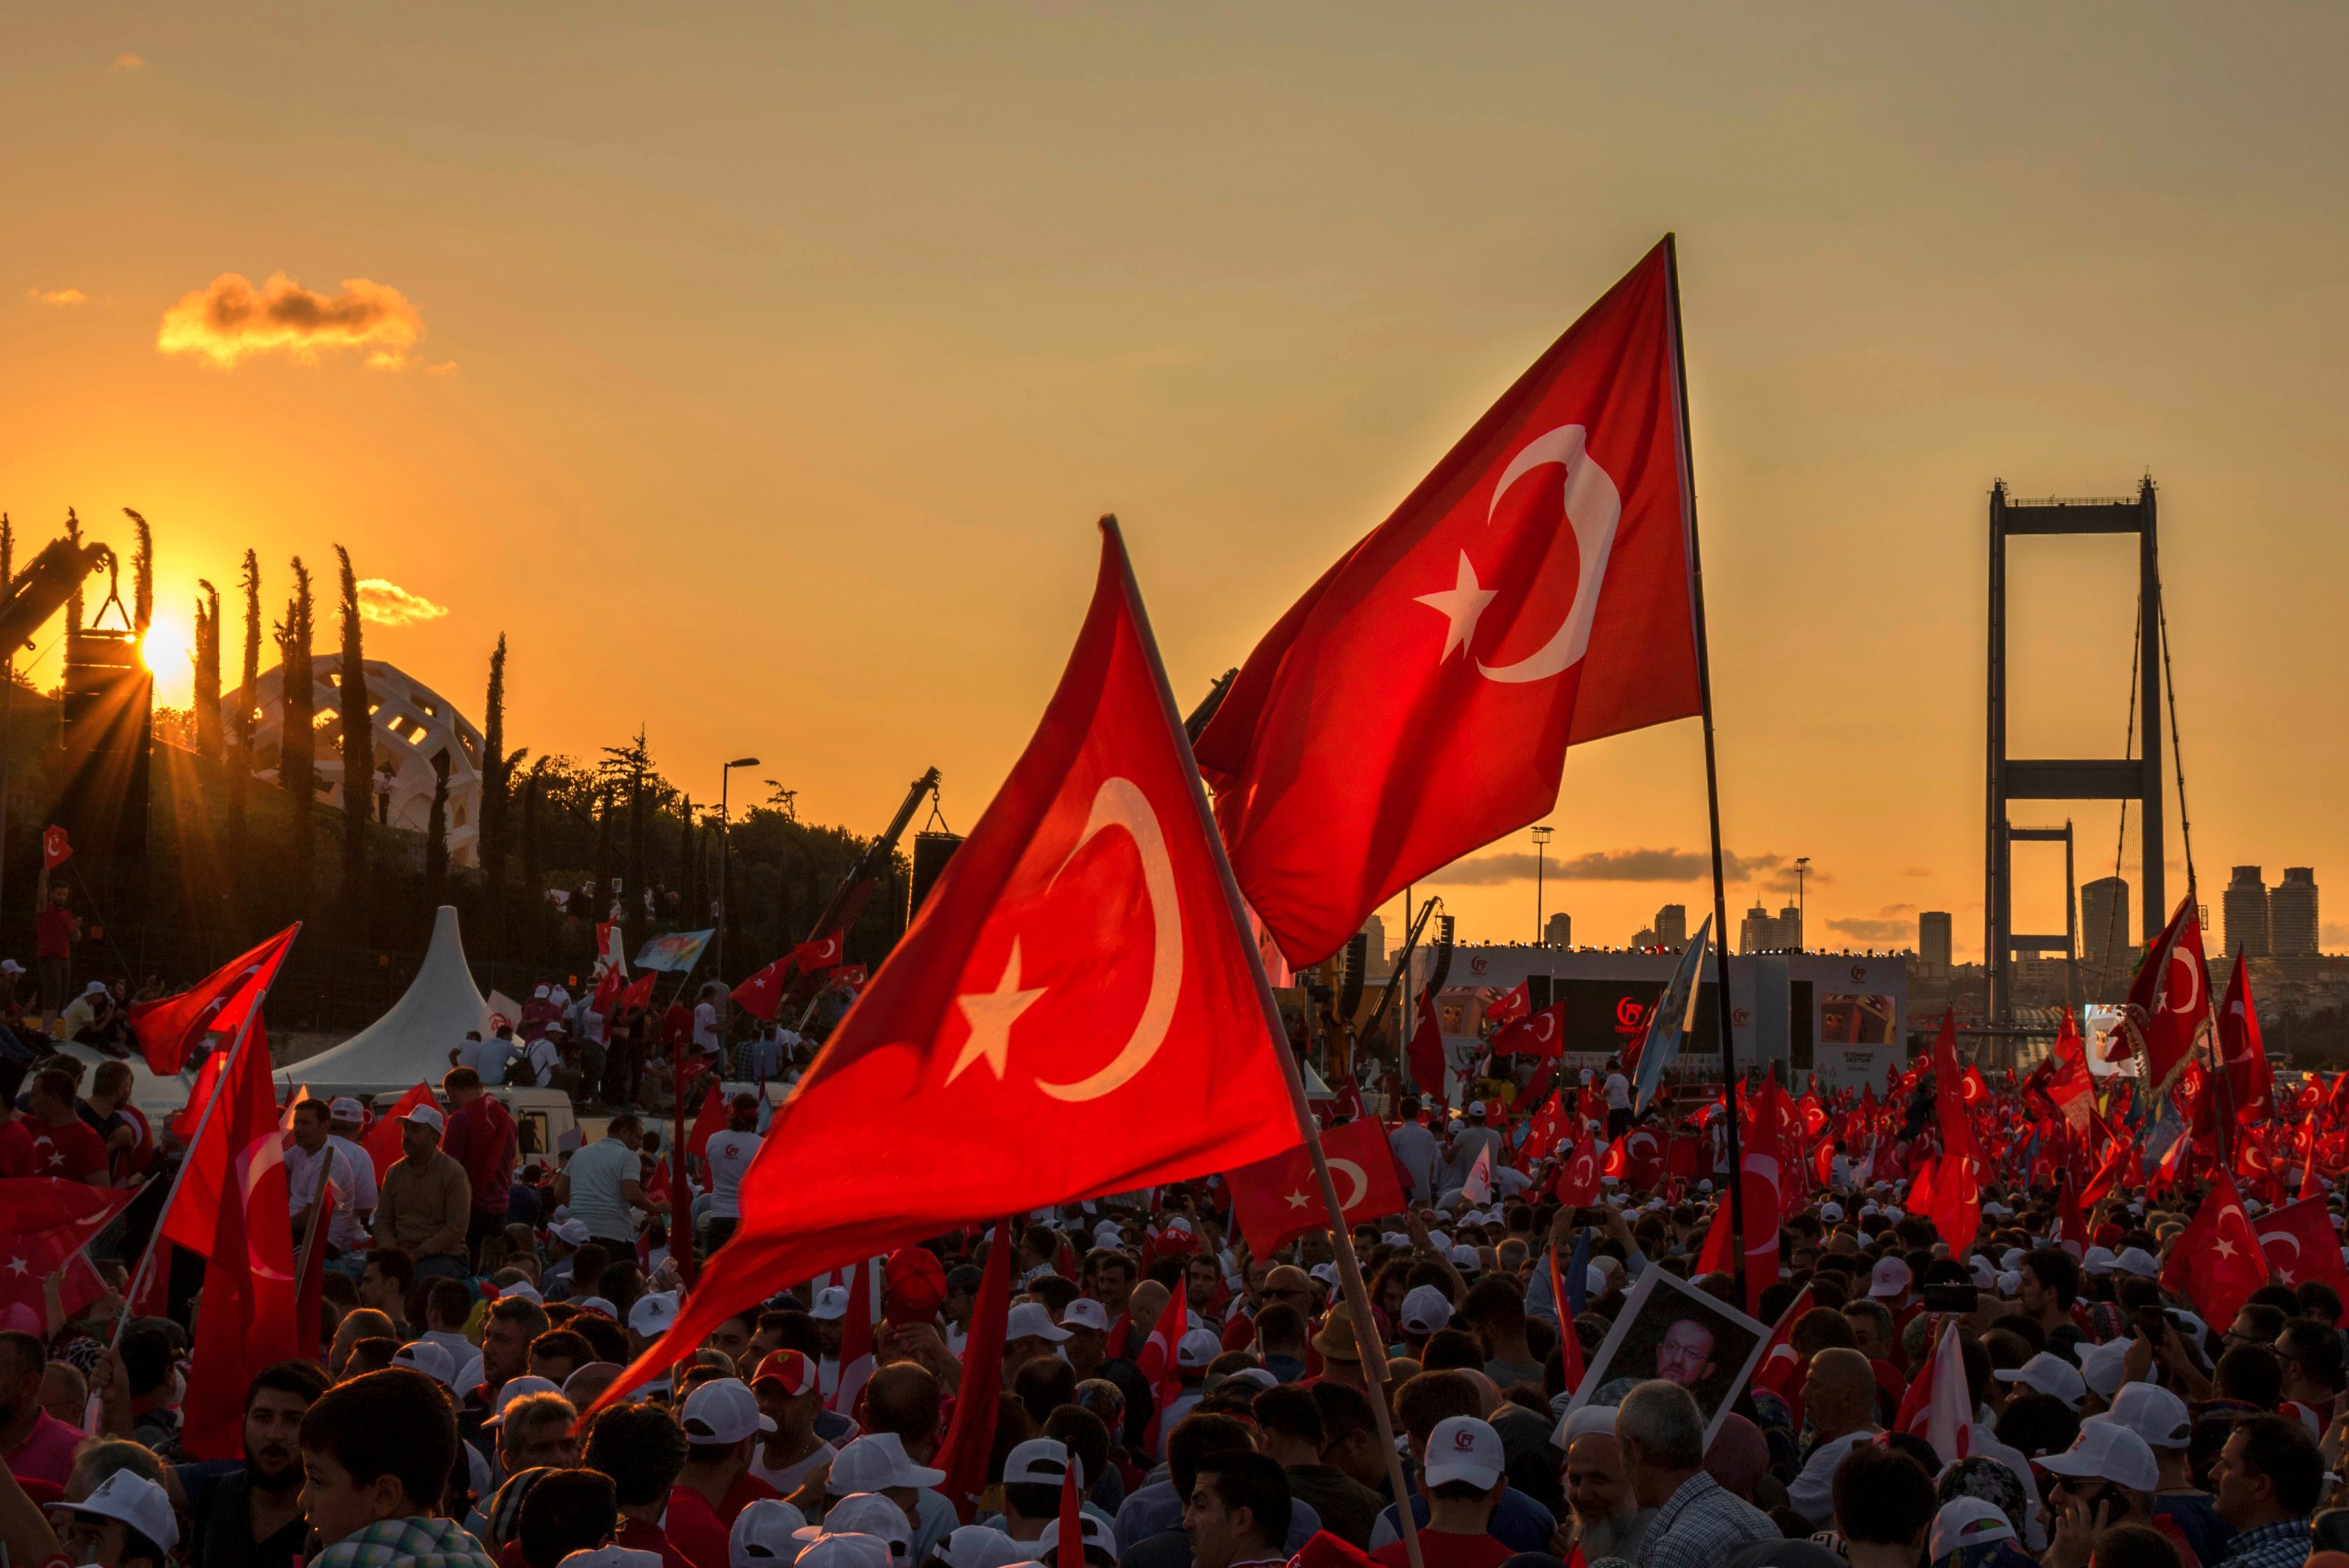 People wave Turkish national flags as they gather in solidarity on the first anniversary of the July 15 coup attempt in Istanbul, Turkey. (Shutterstock Photo)